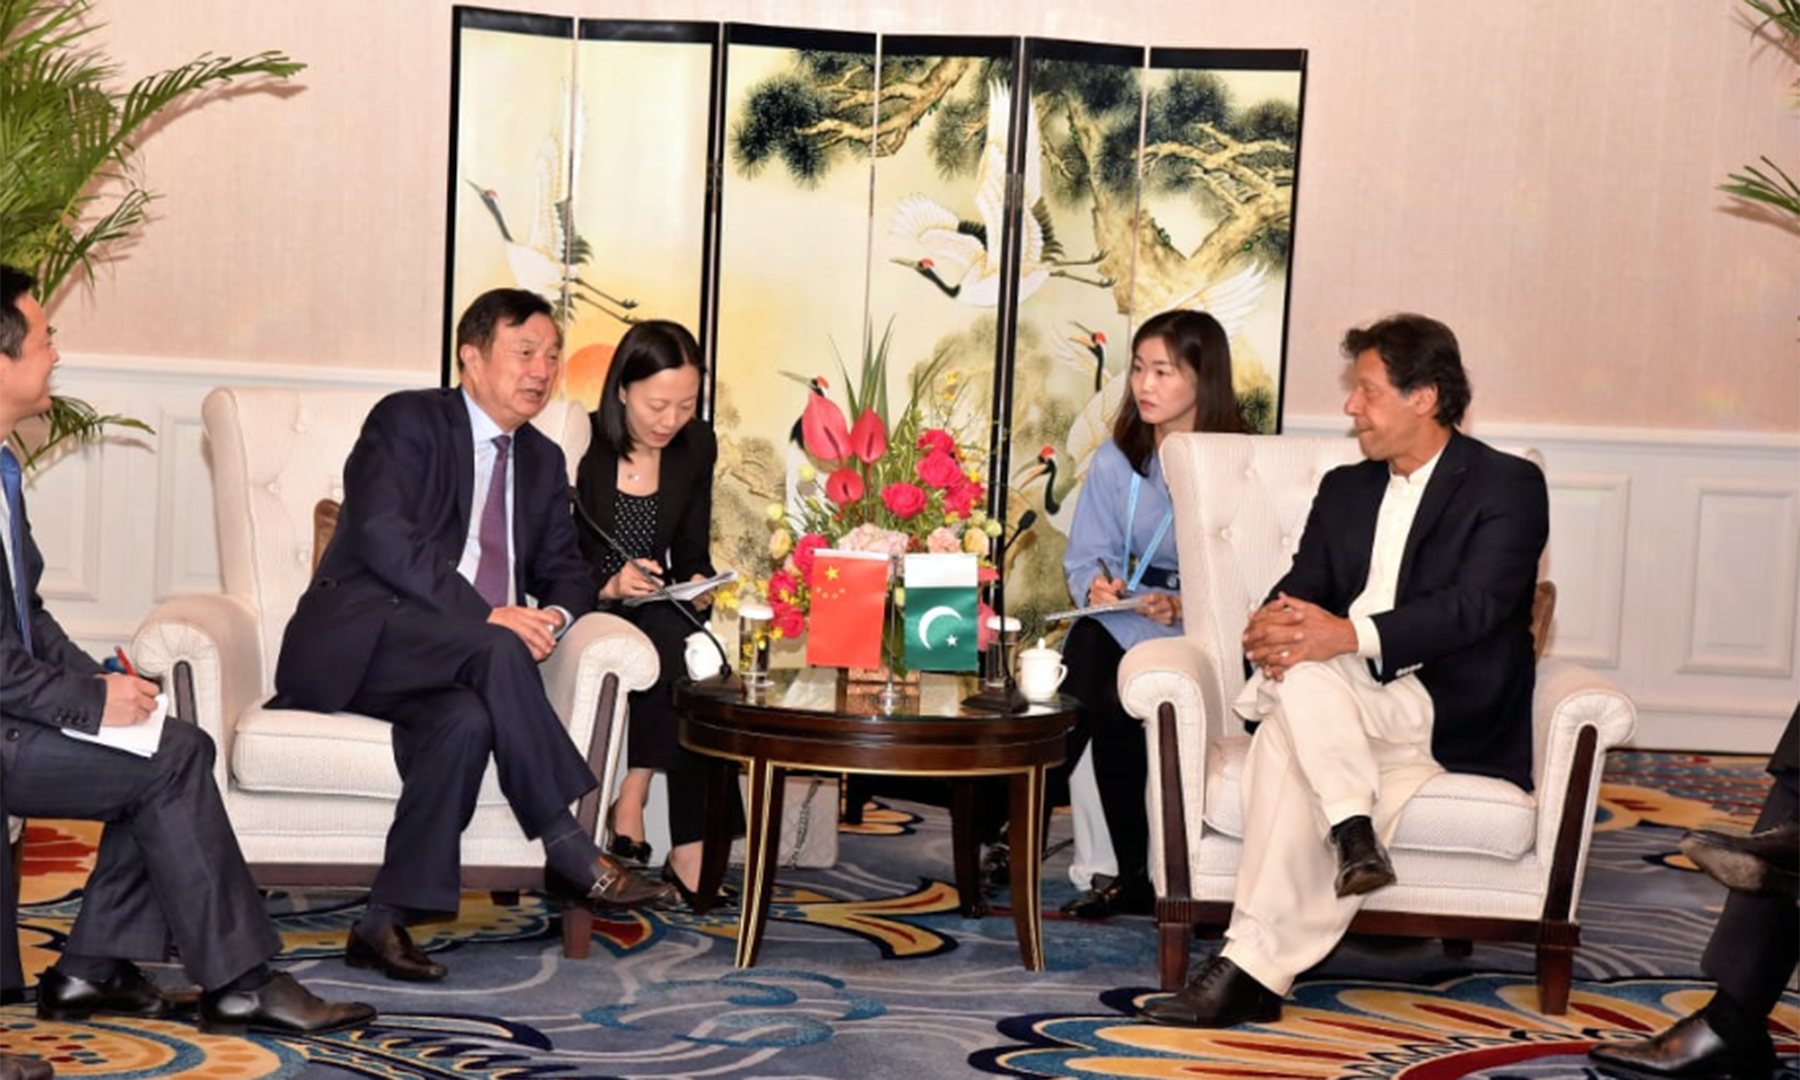 Prime Minister Imran Khan in a discussion with Huawei CEO Ren Zhengfei. — Ministry of Planning